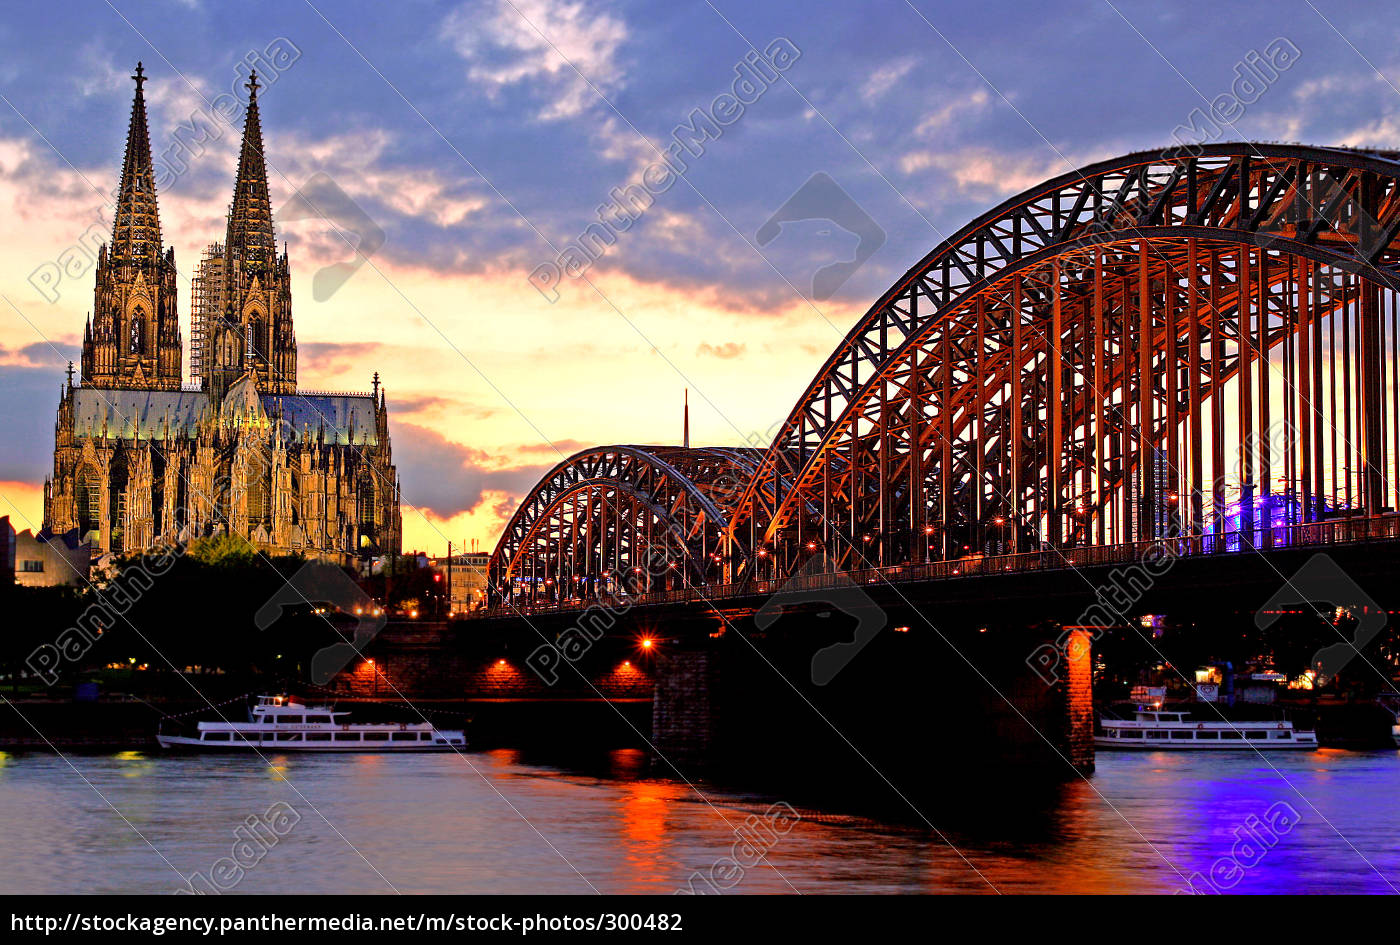 cologne, lights - 300482